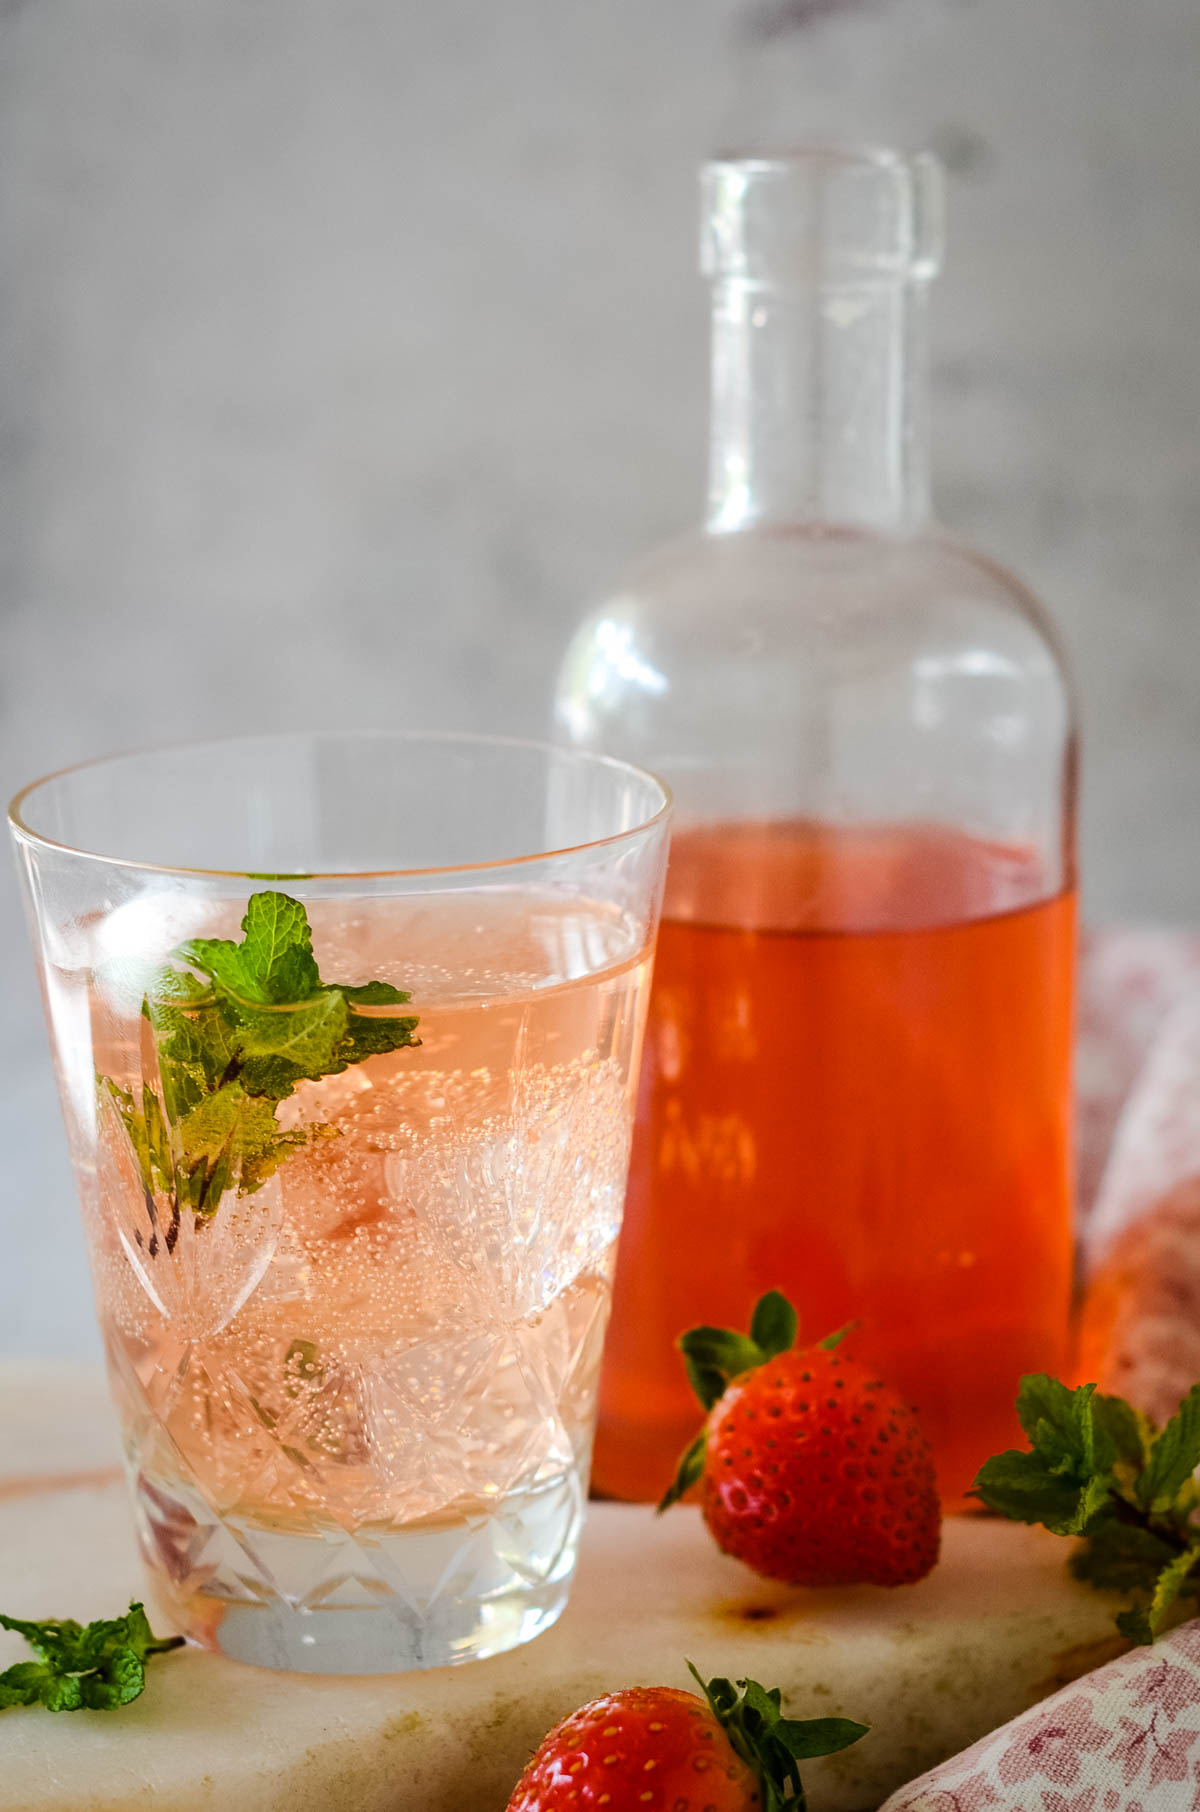 bottle of cordial behind small glass with drink in it and mint leaves on top